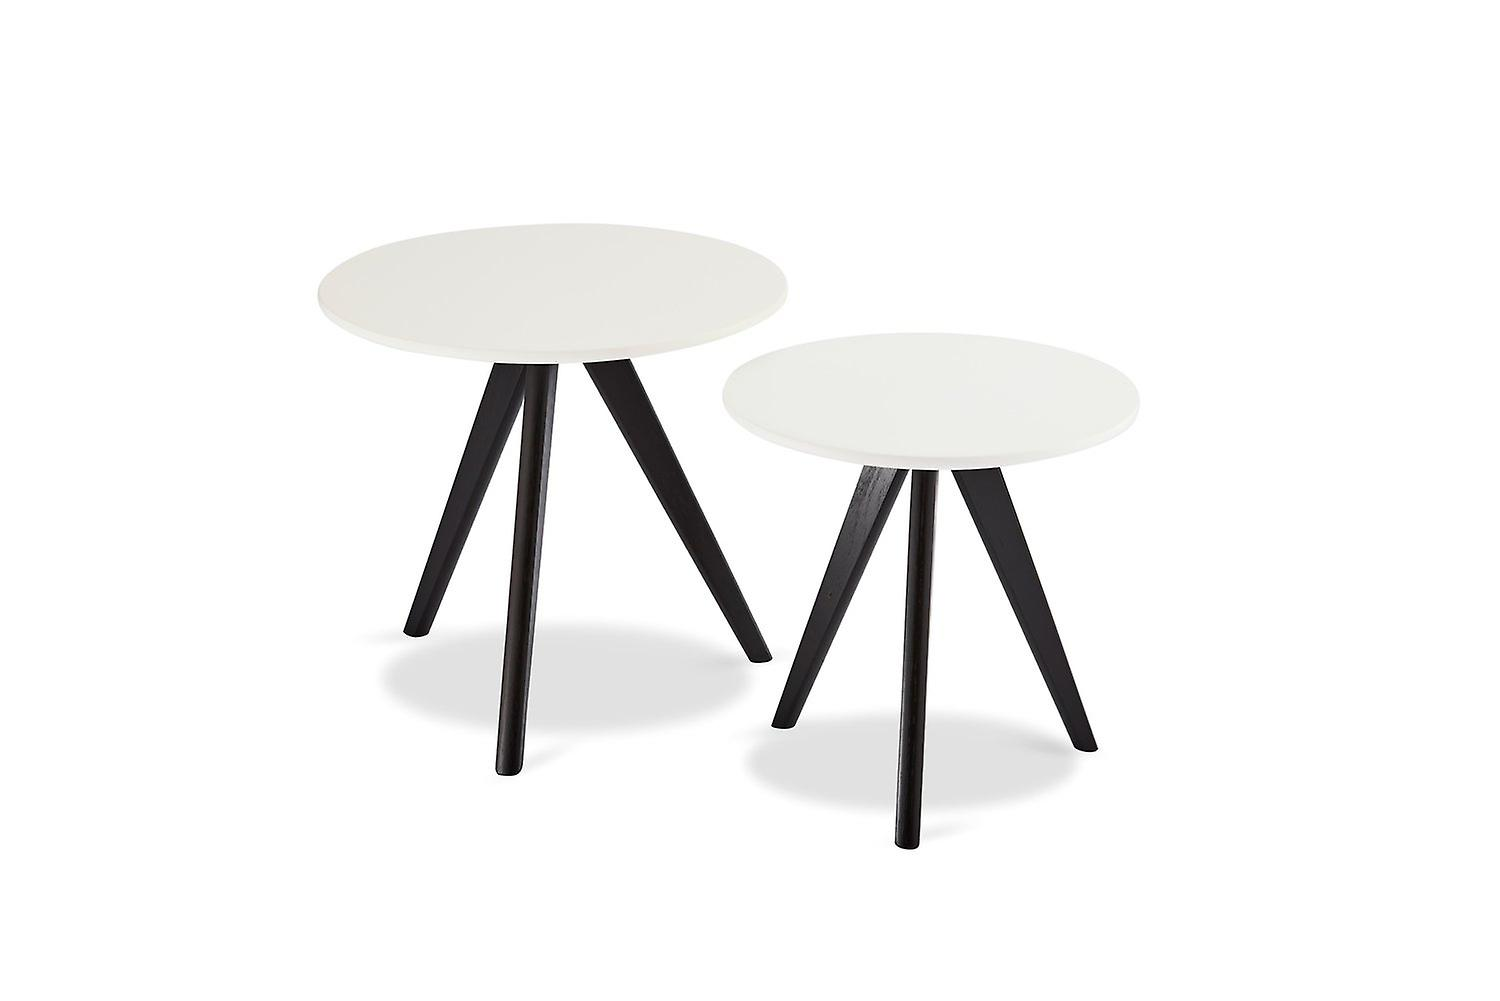 Furnhouse Life Coffee Table, White Top, Black Wooden Legs, 40x40x40 cm